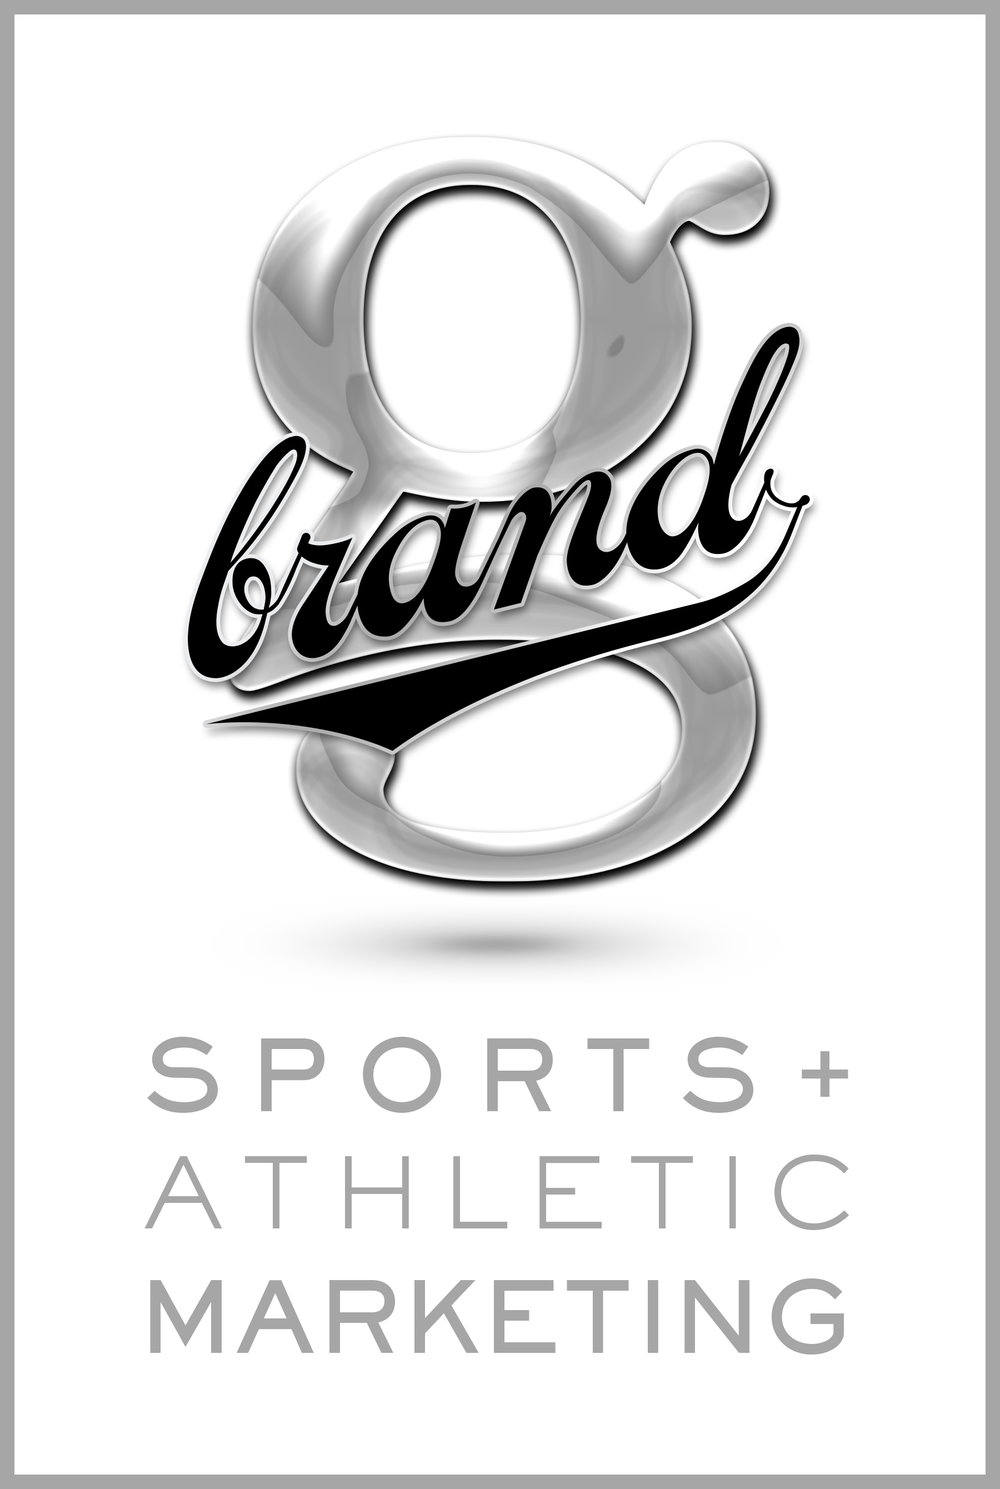 Brand G Athletc [v5] Banner by Graham Hnedak Brand G Creative 22 SEPT 2016.jpg